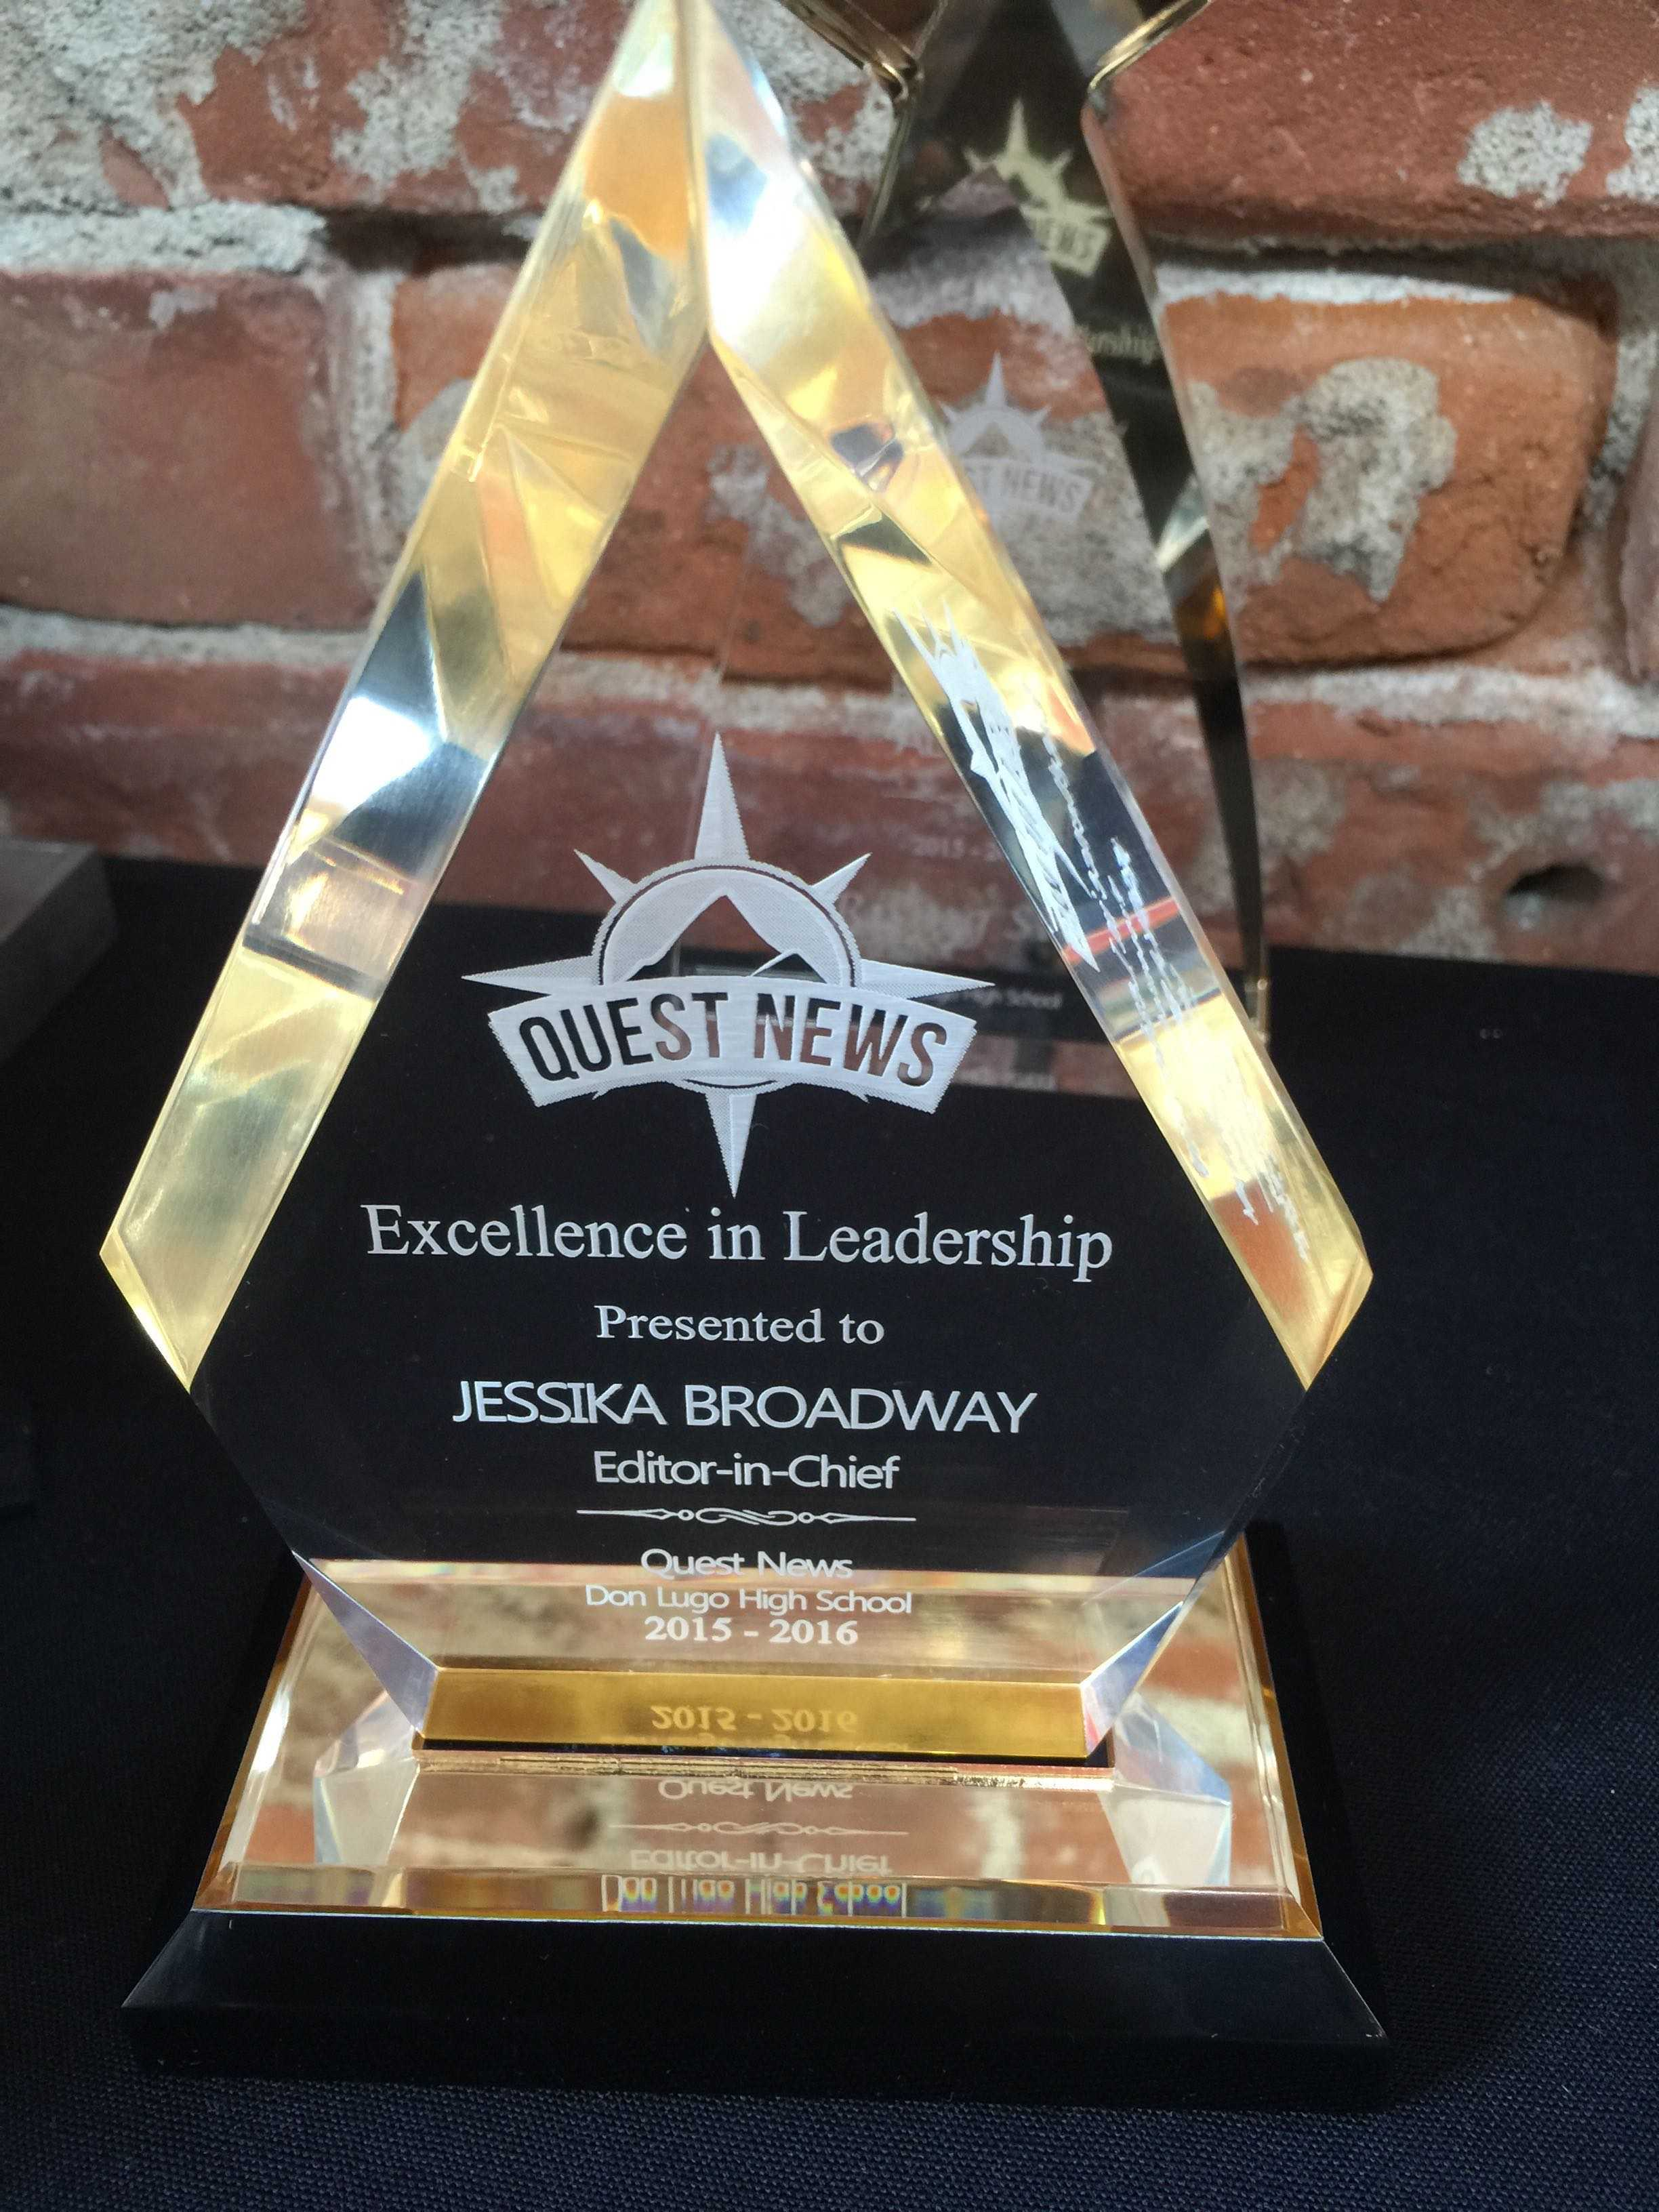 Leadership+is+the+epitome+of+the+Quest+News.